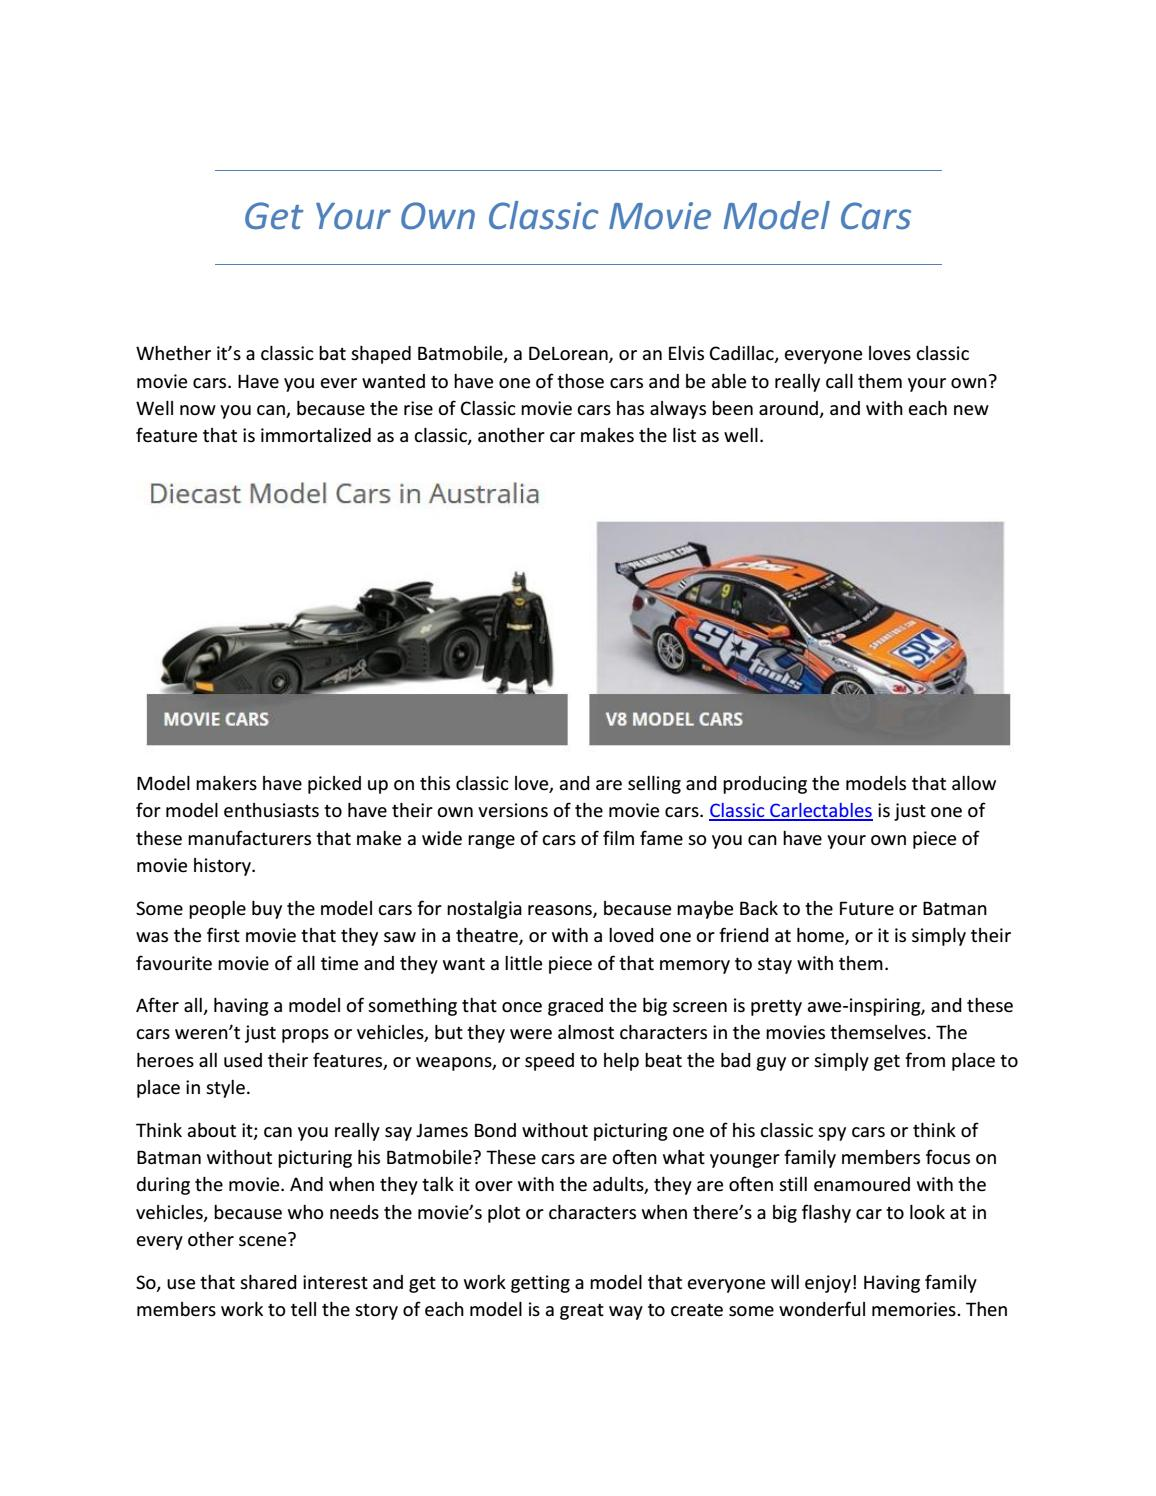 Newest Model Car Arrivals By James Trevinno Issuu